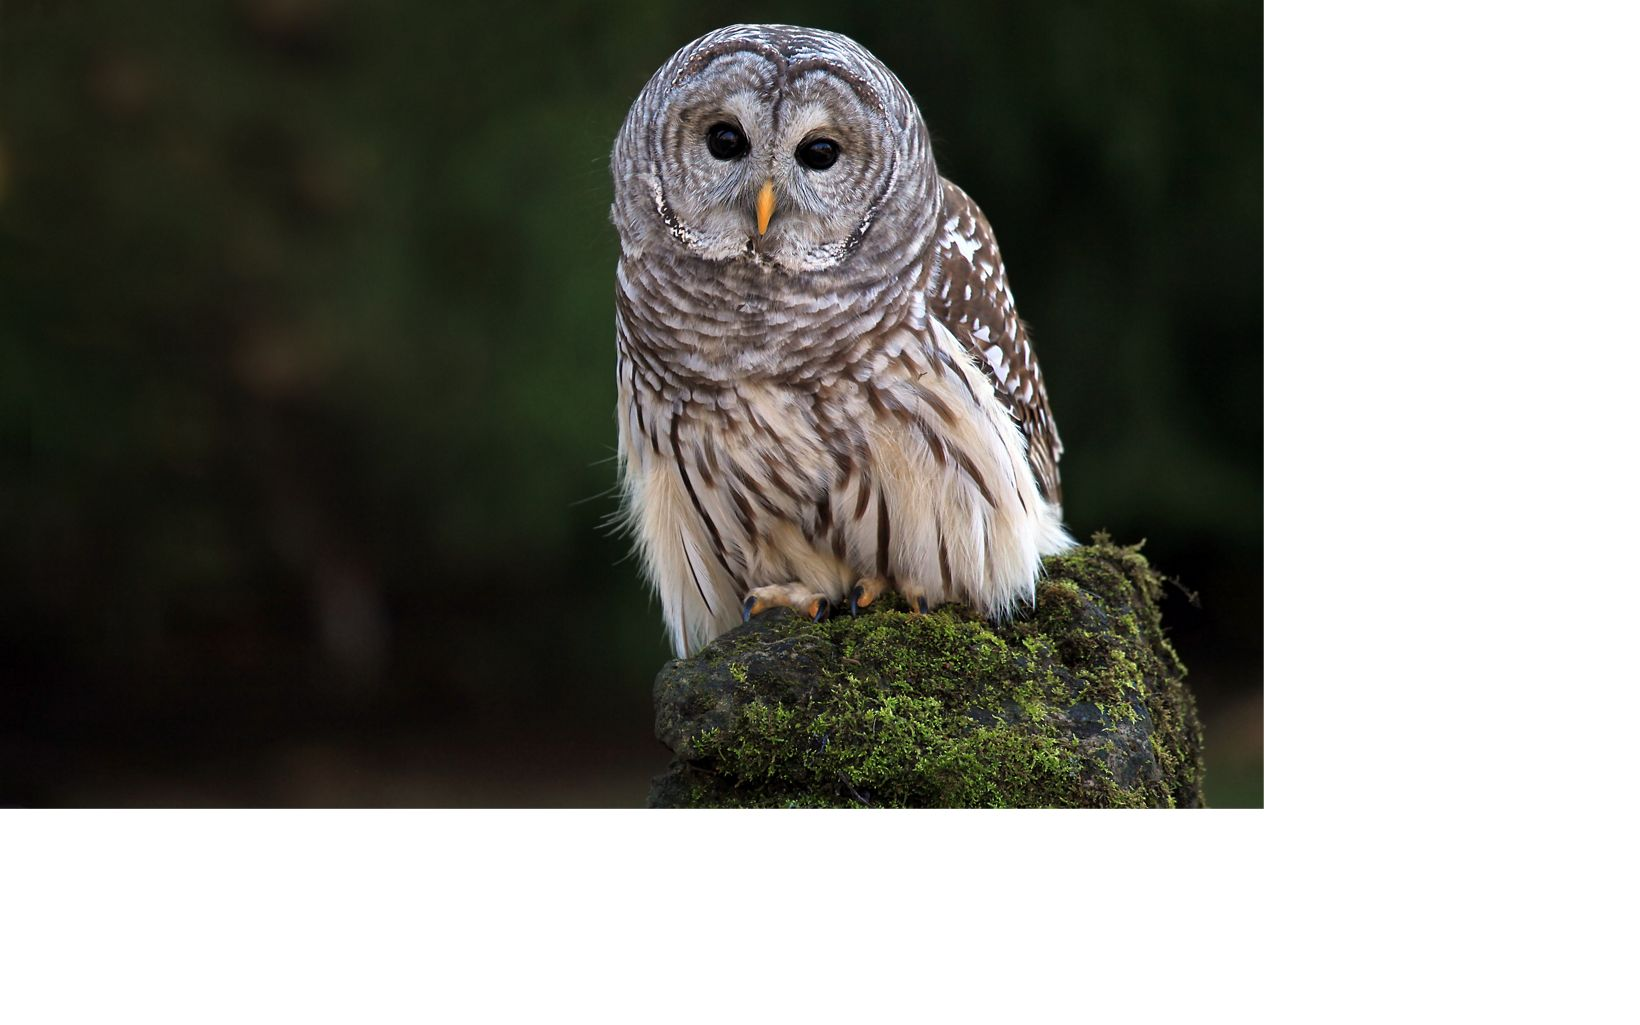 barred owl on a mossy stump